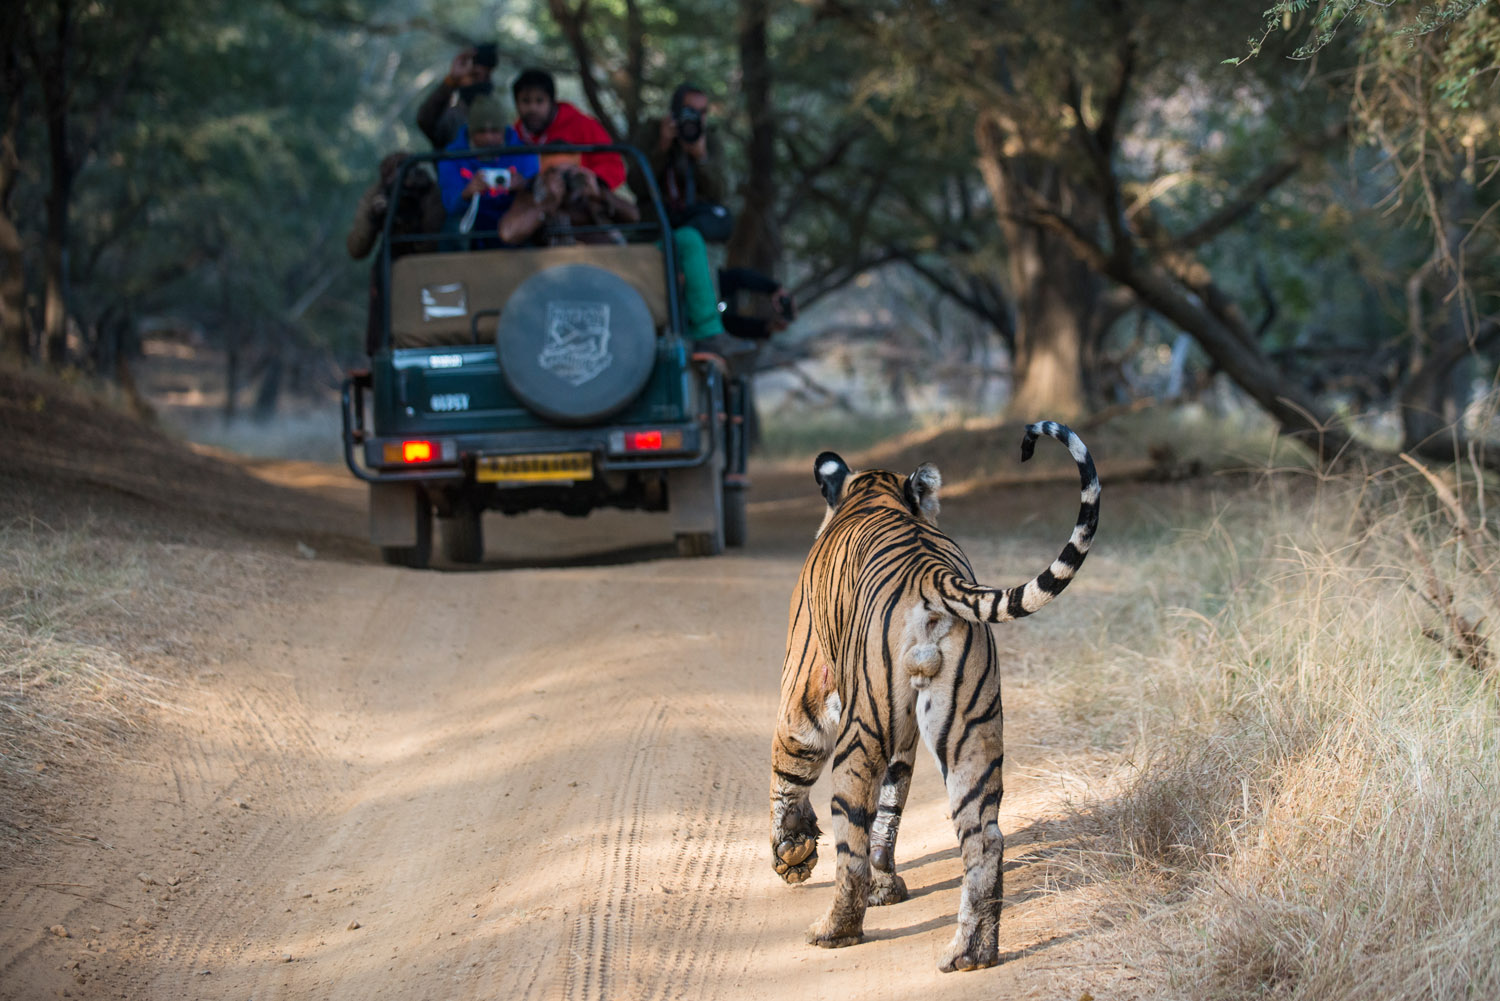 Bengal tiger approaching tourists in jeep, Ranthambhore National Park, Rajasthan, India